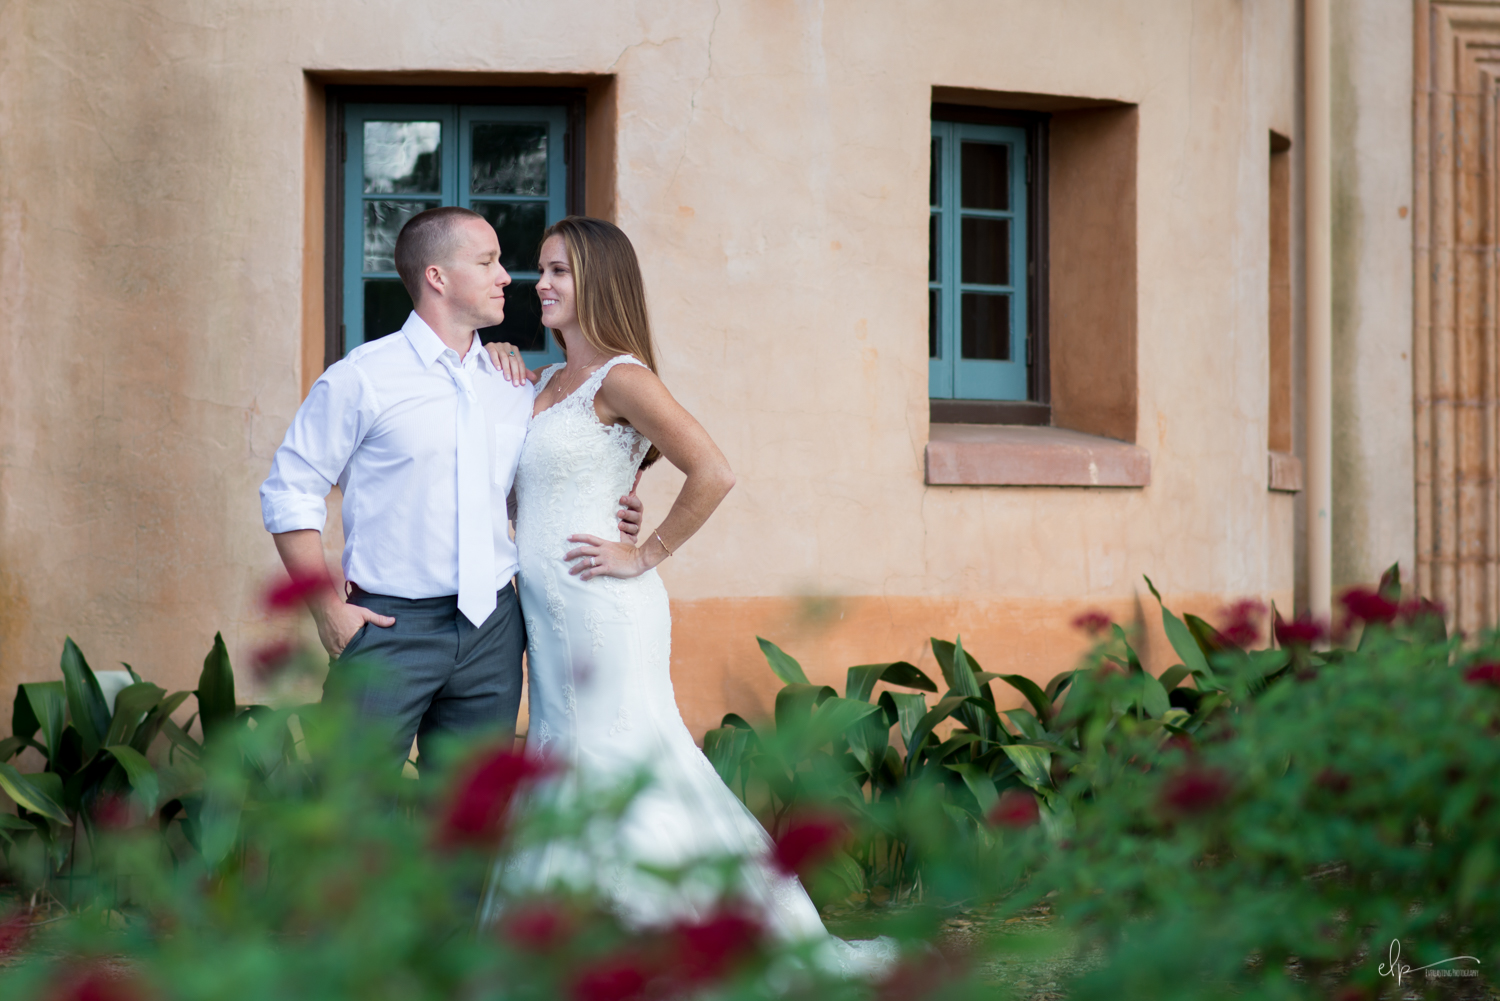 Photo session locations in bok towers